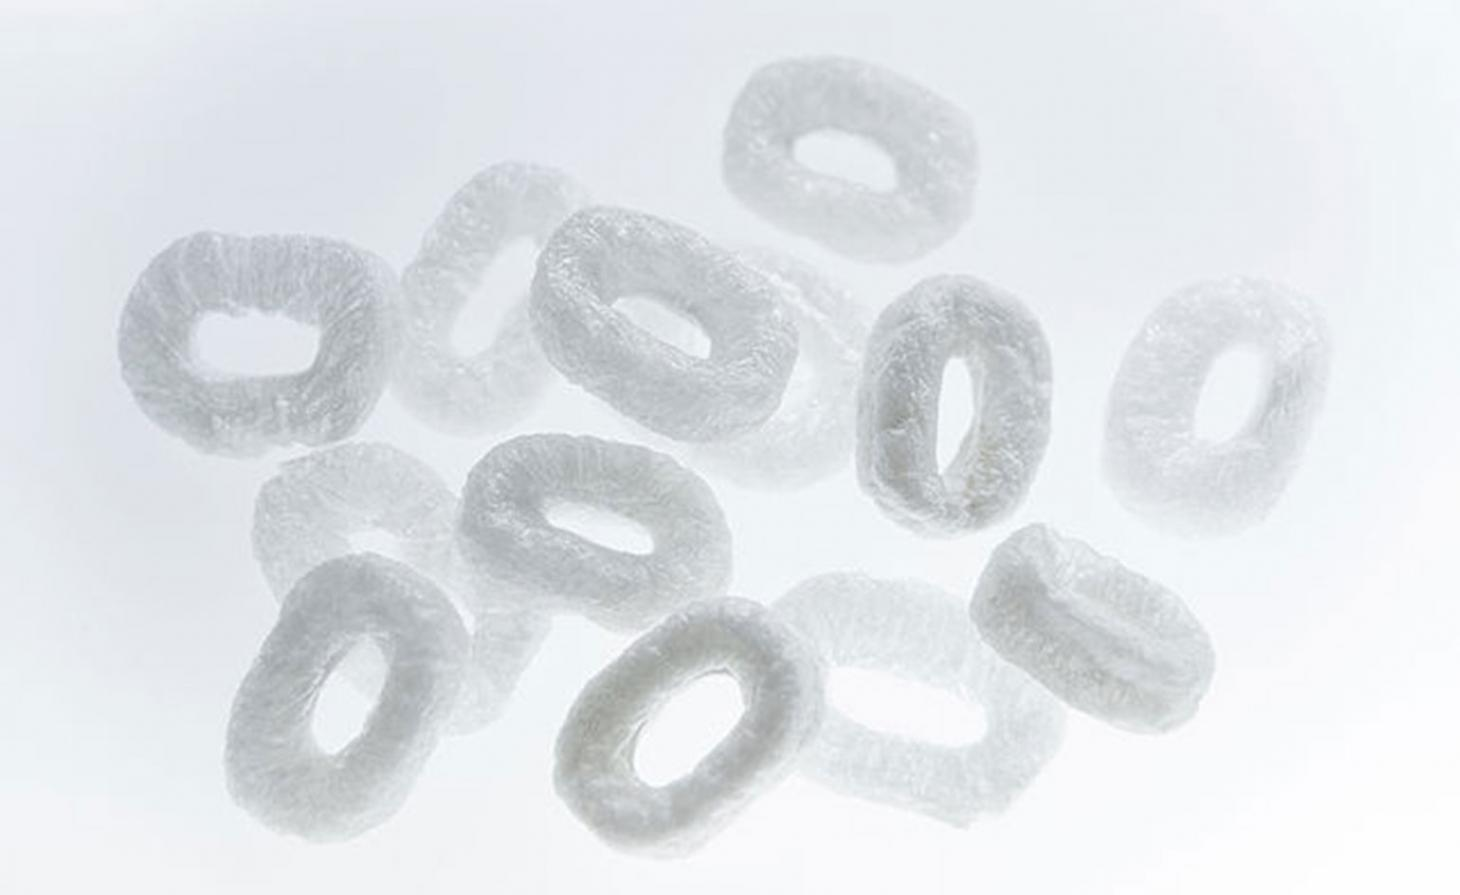 white agar plastic pieces